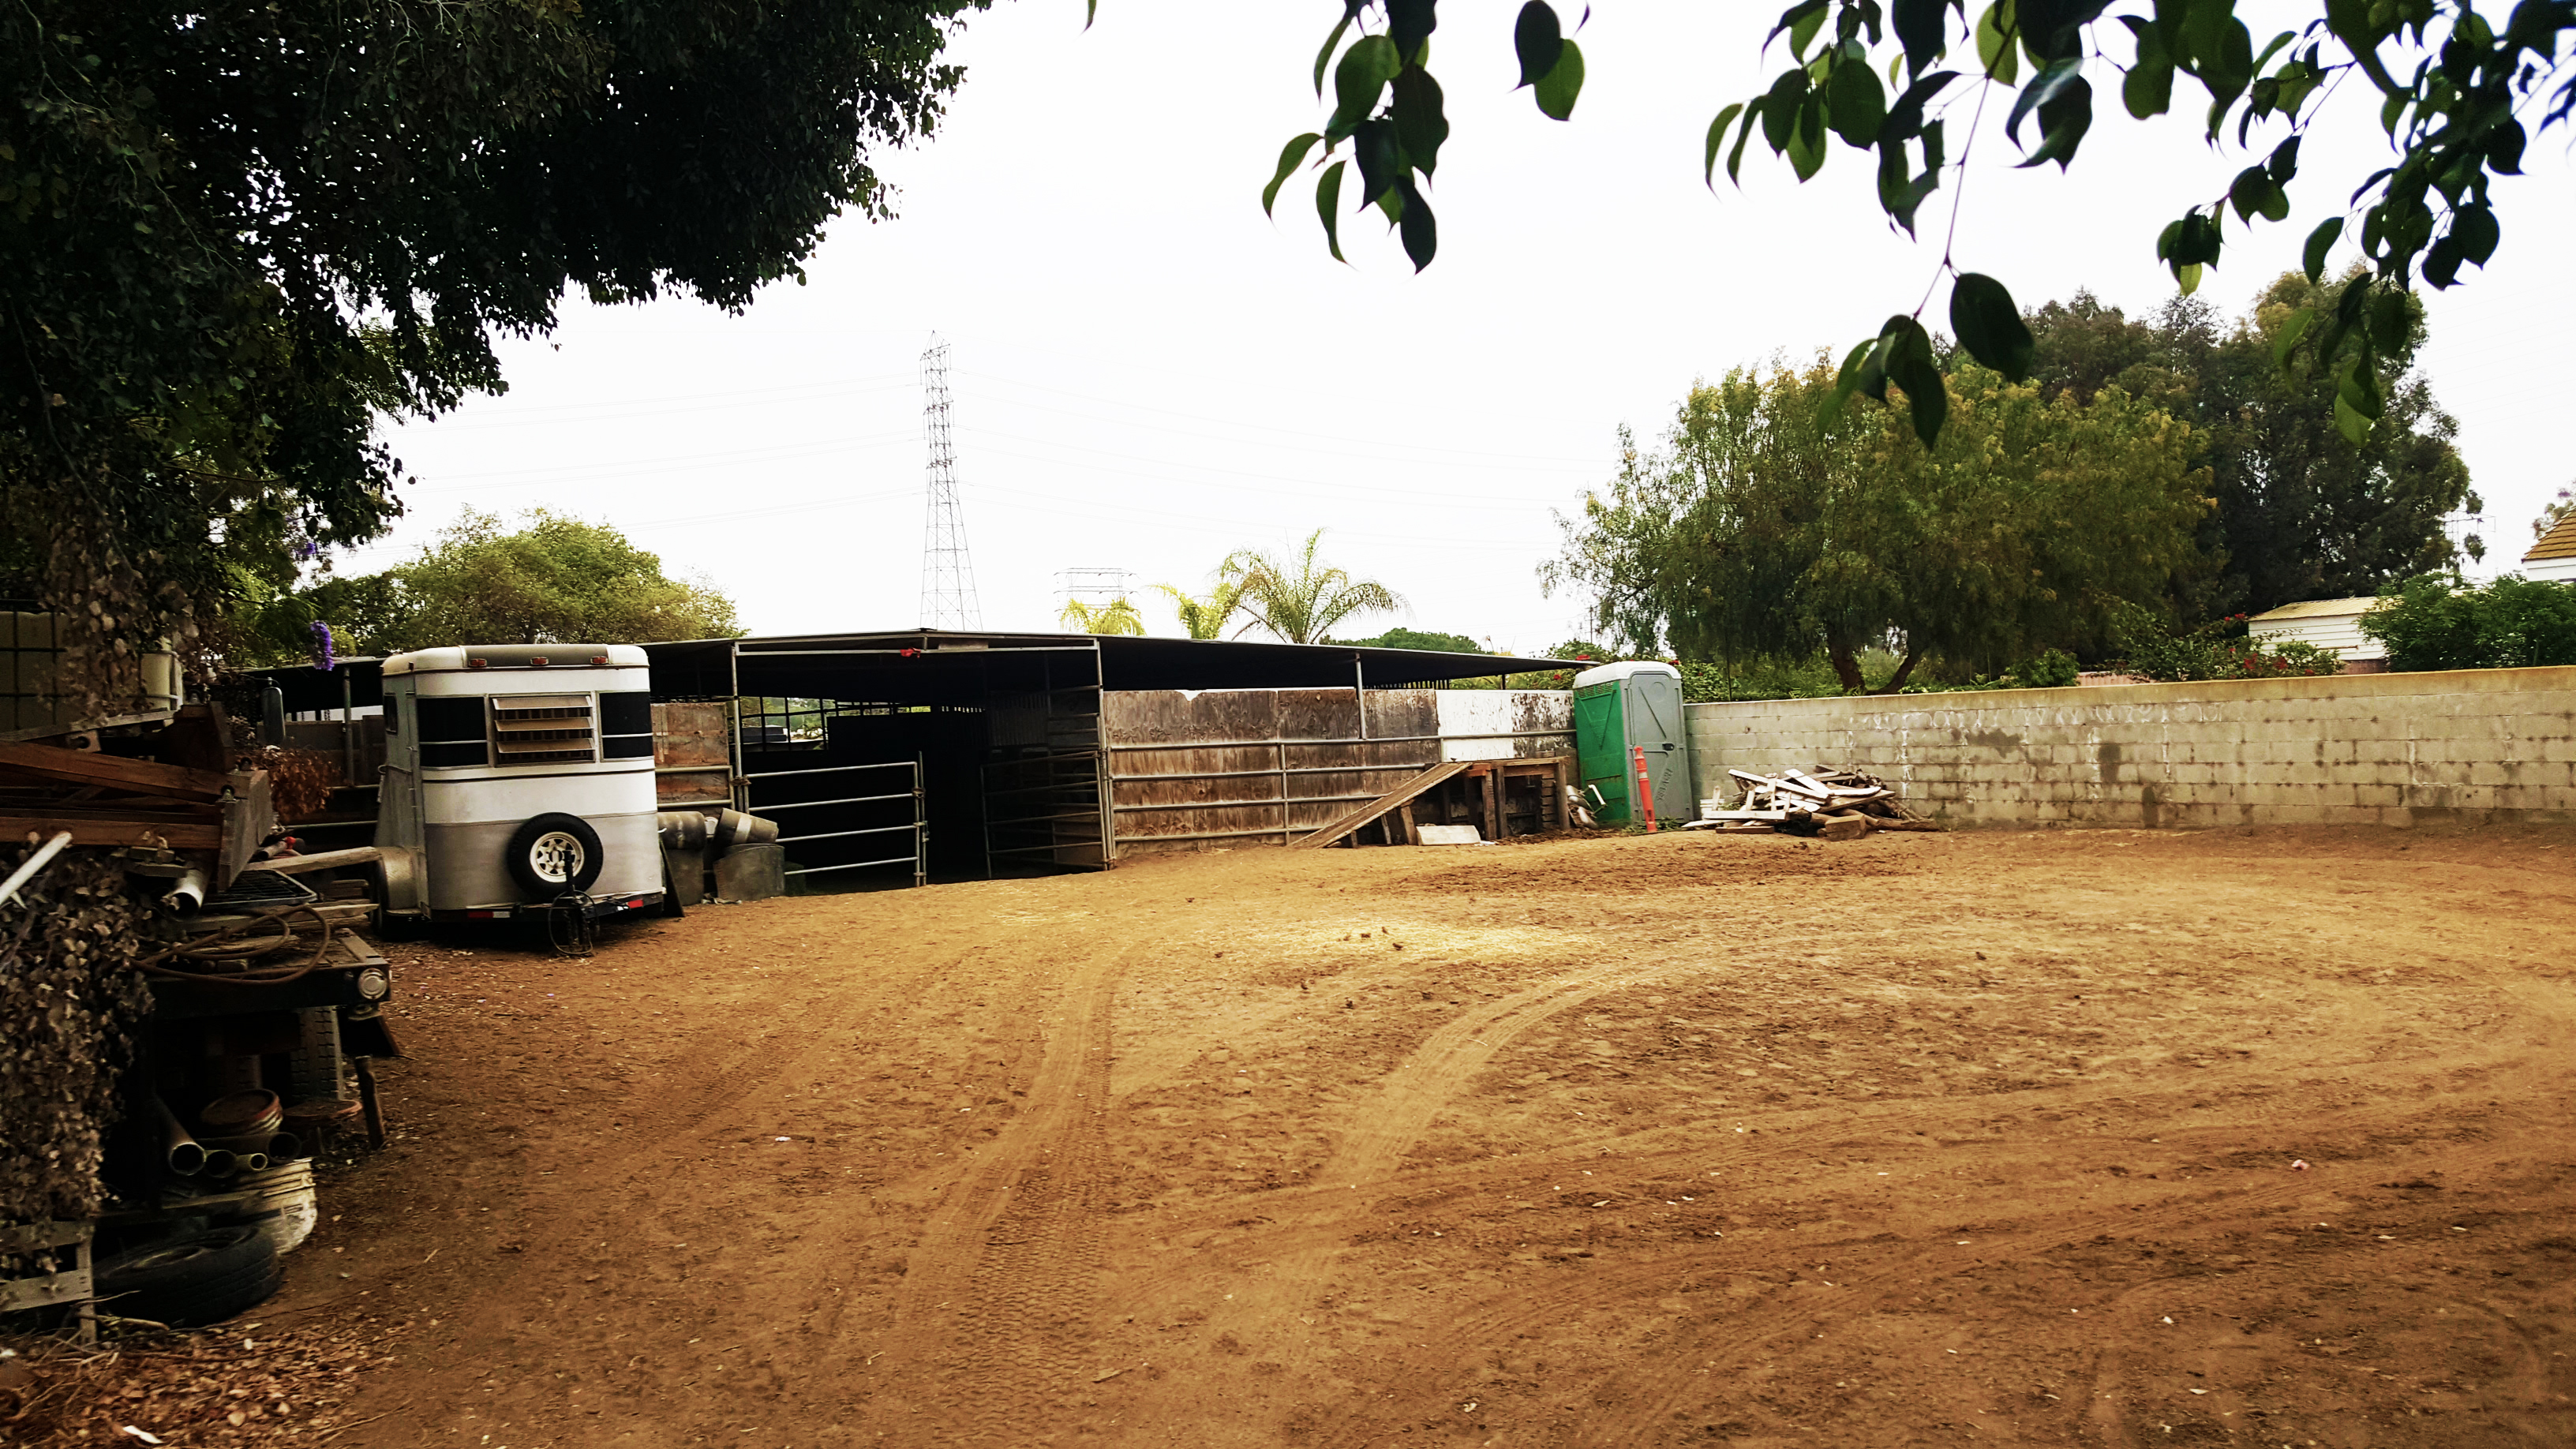 SOLD! | 16626 Chicago Avenue, Bellflower CA | 4 UNITS + HORSE STABLES   CLICK HERE FOR DETAILS